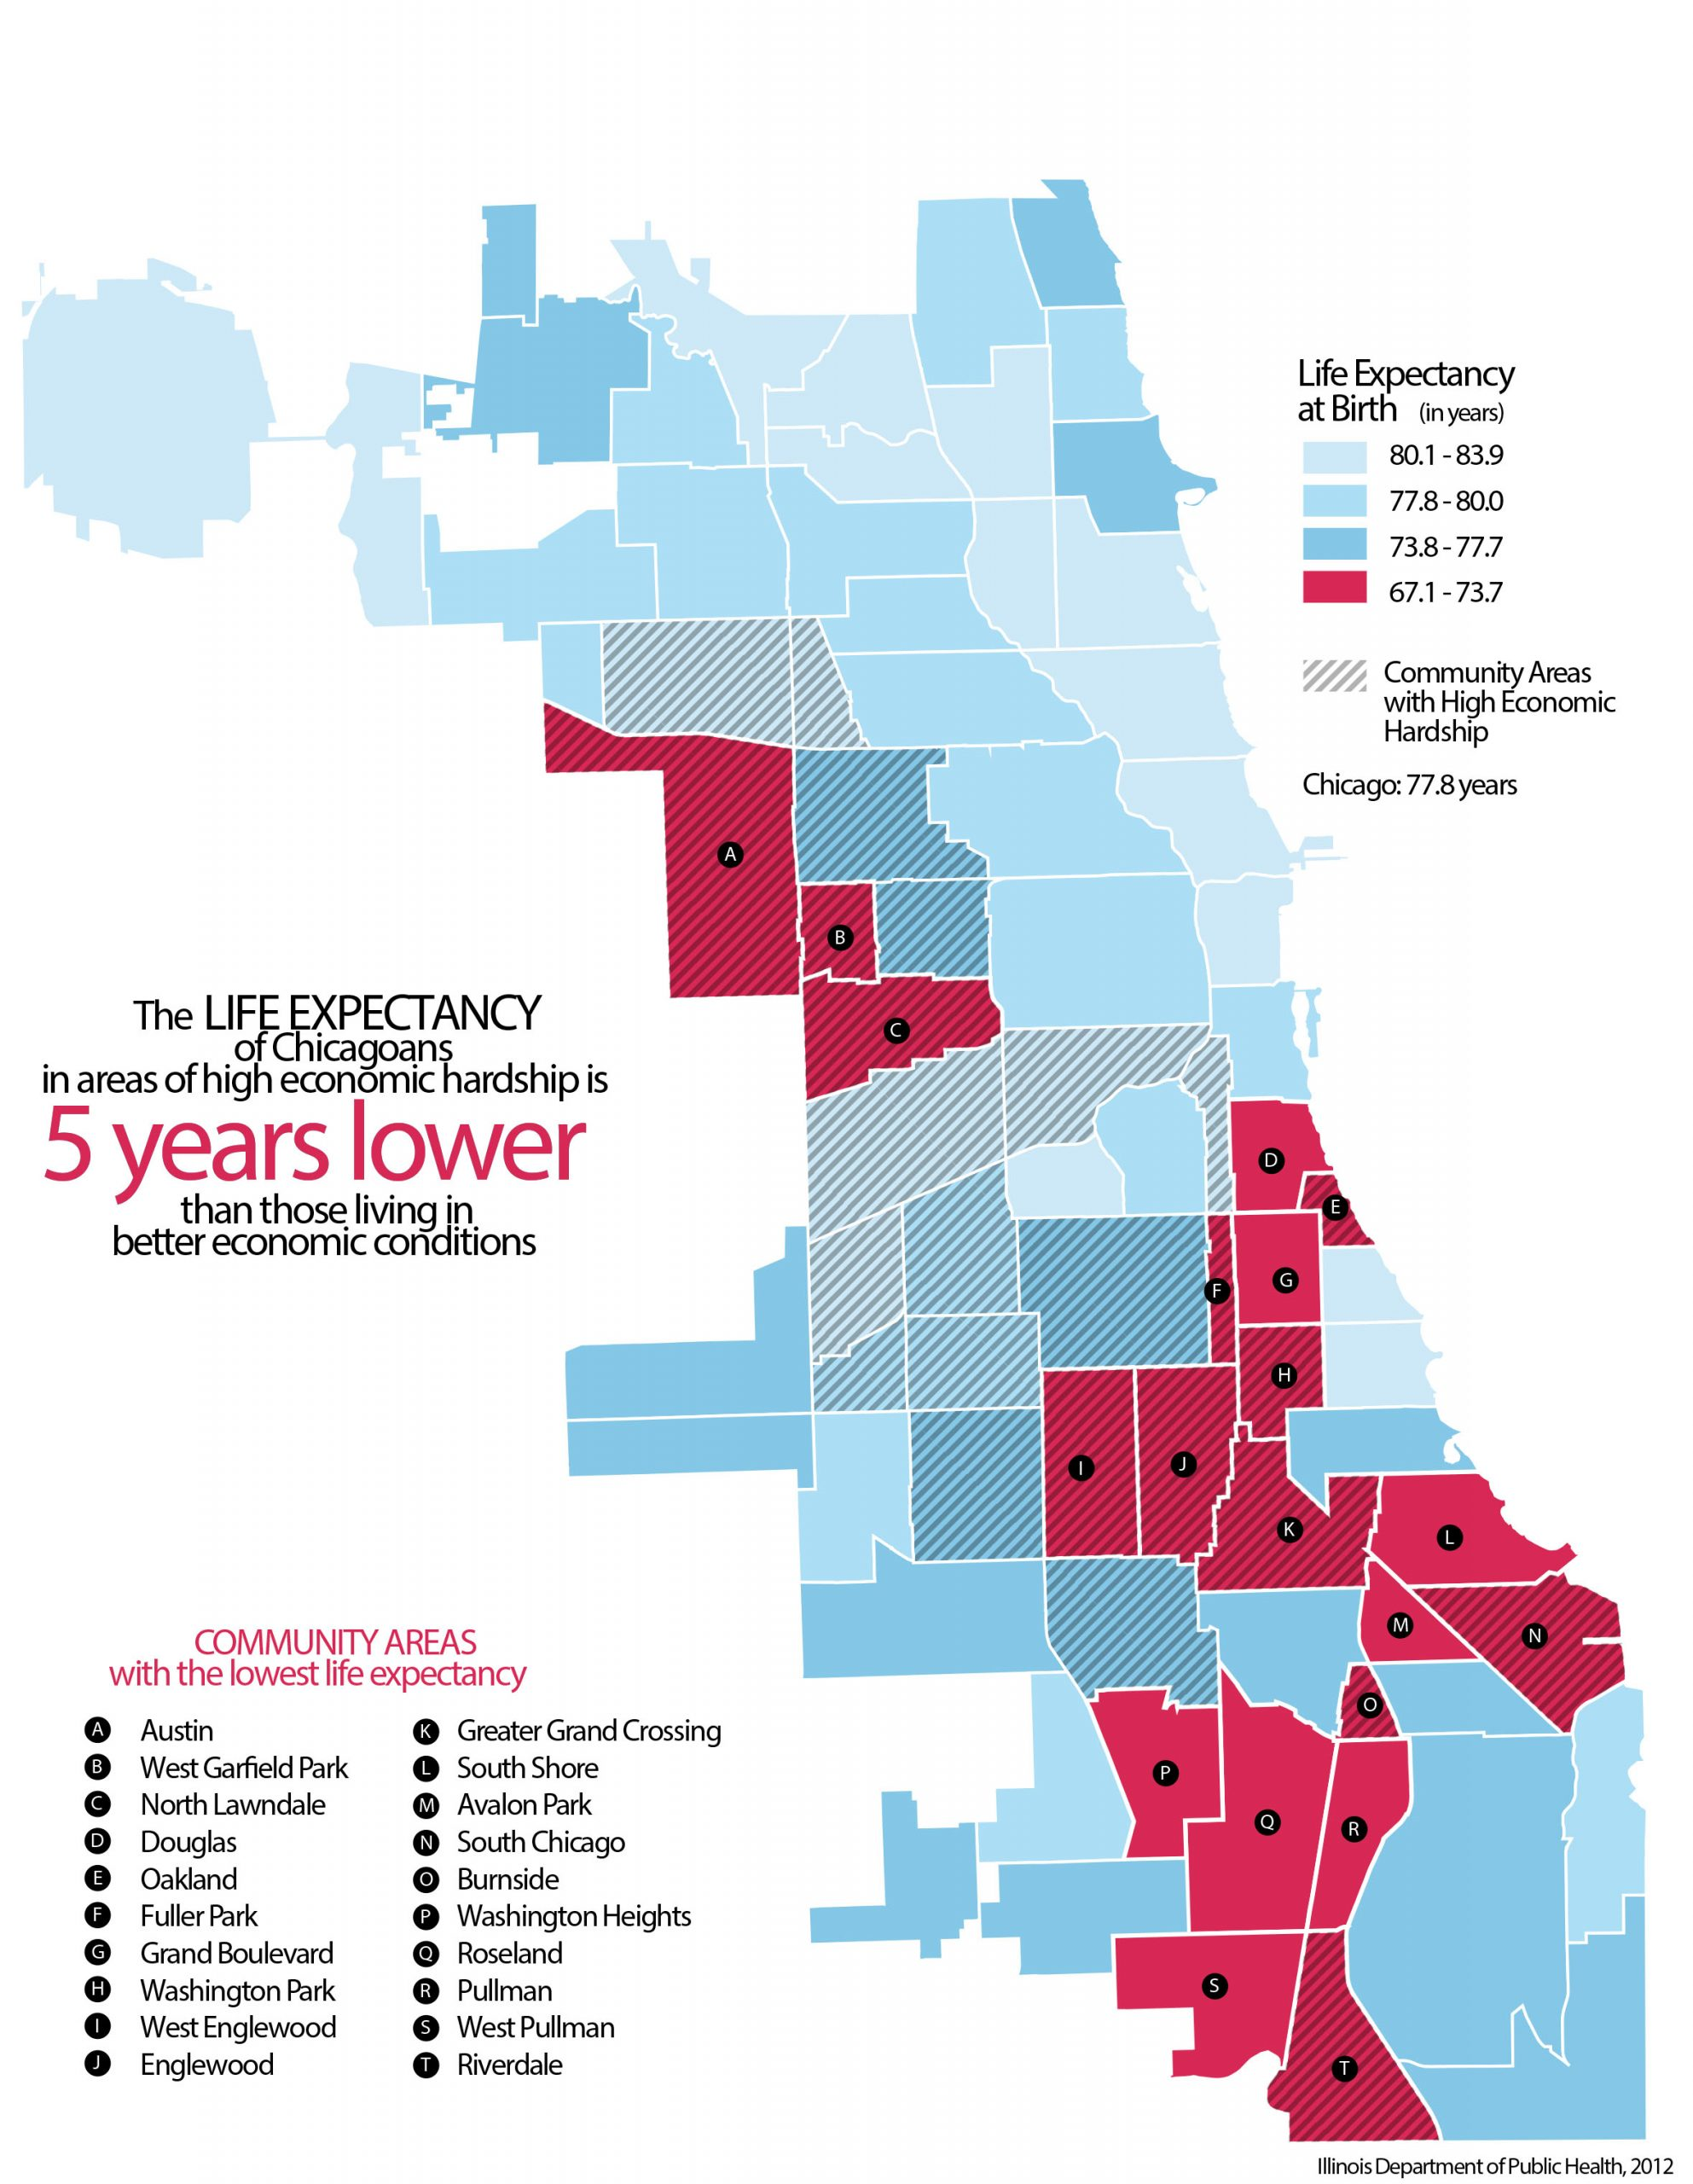 The public health department also found a gap in life expectancy tied to neighborhood.